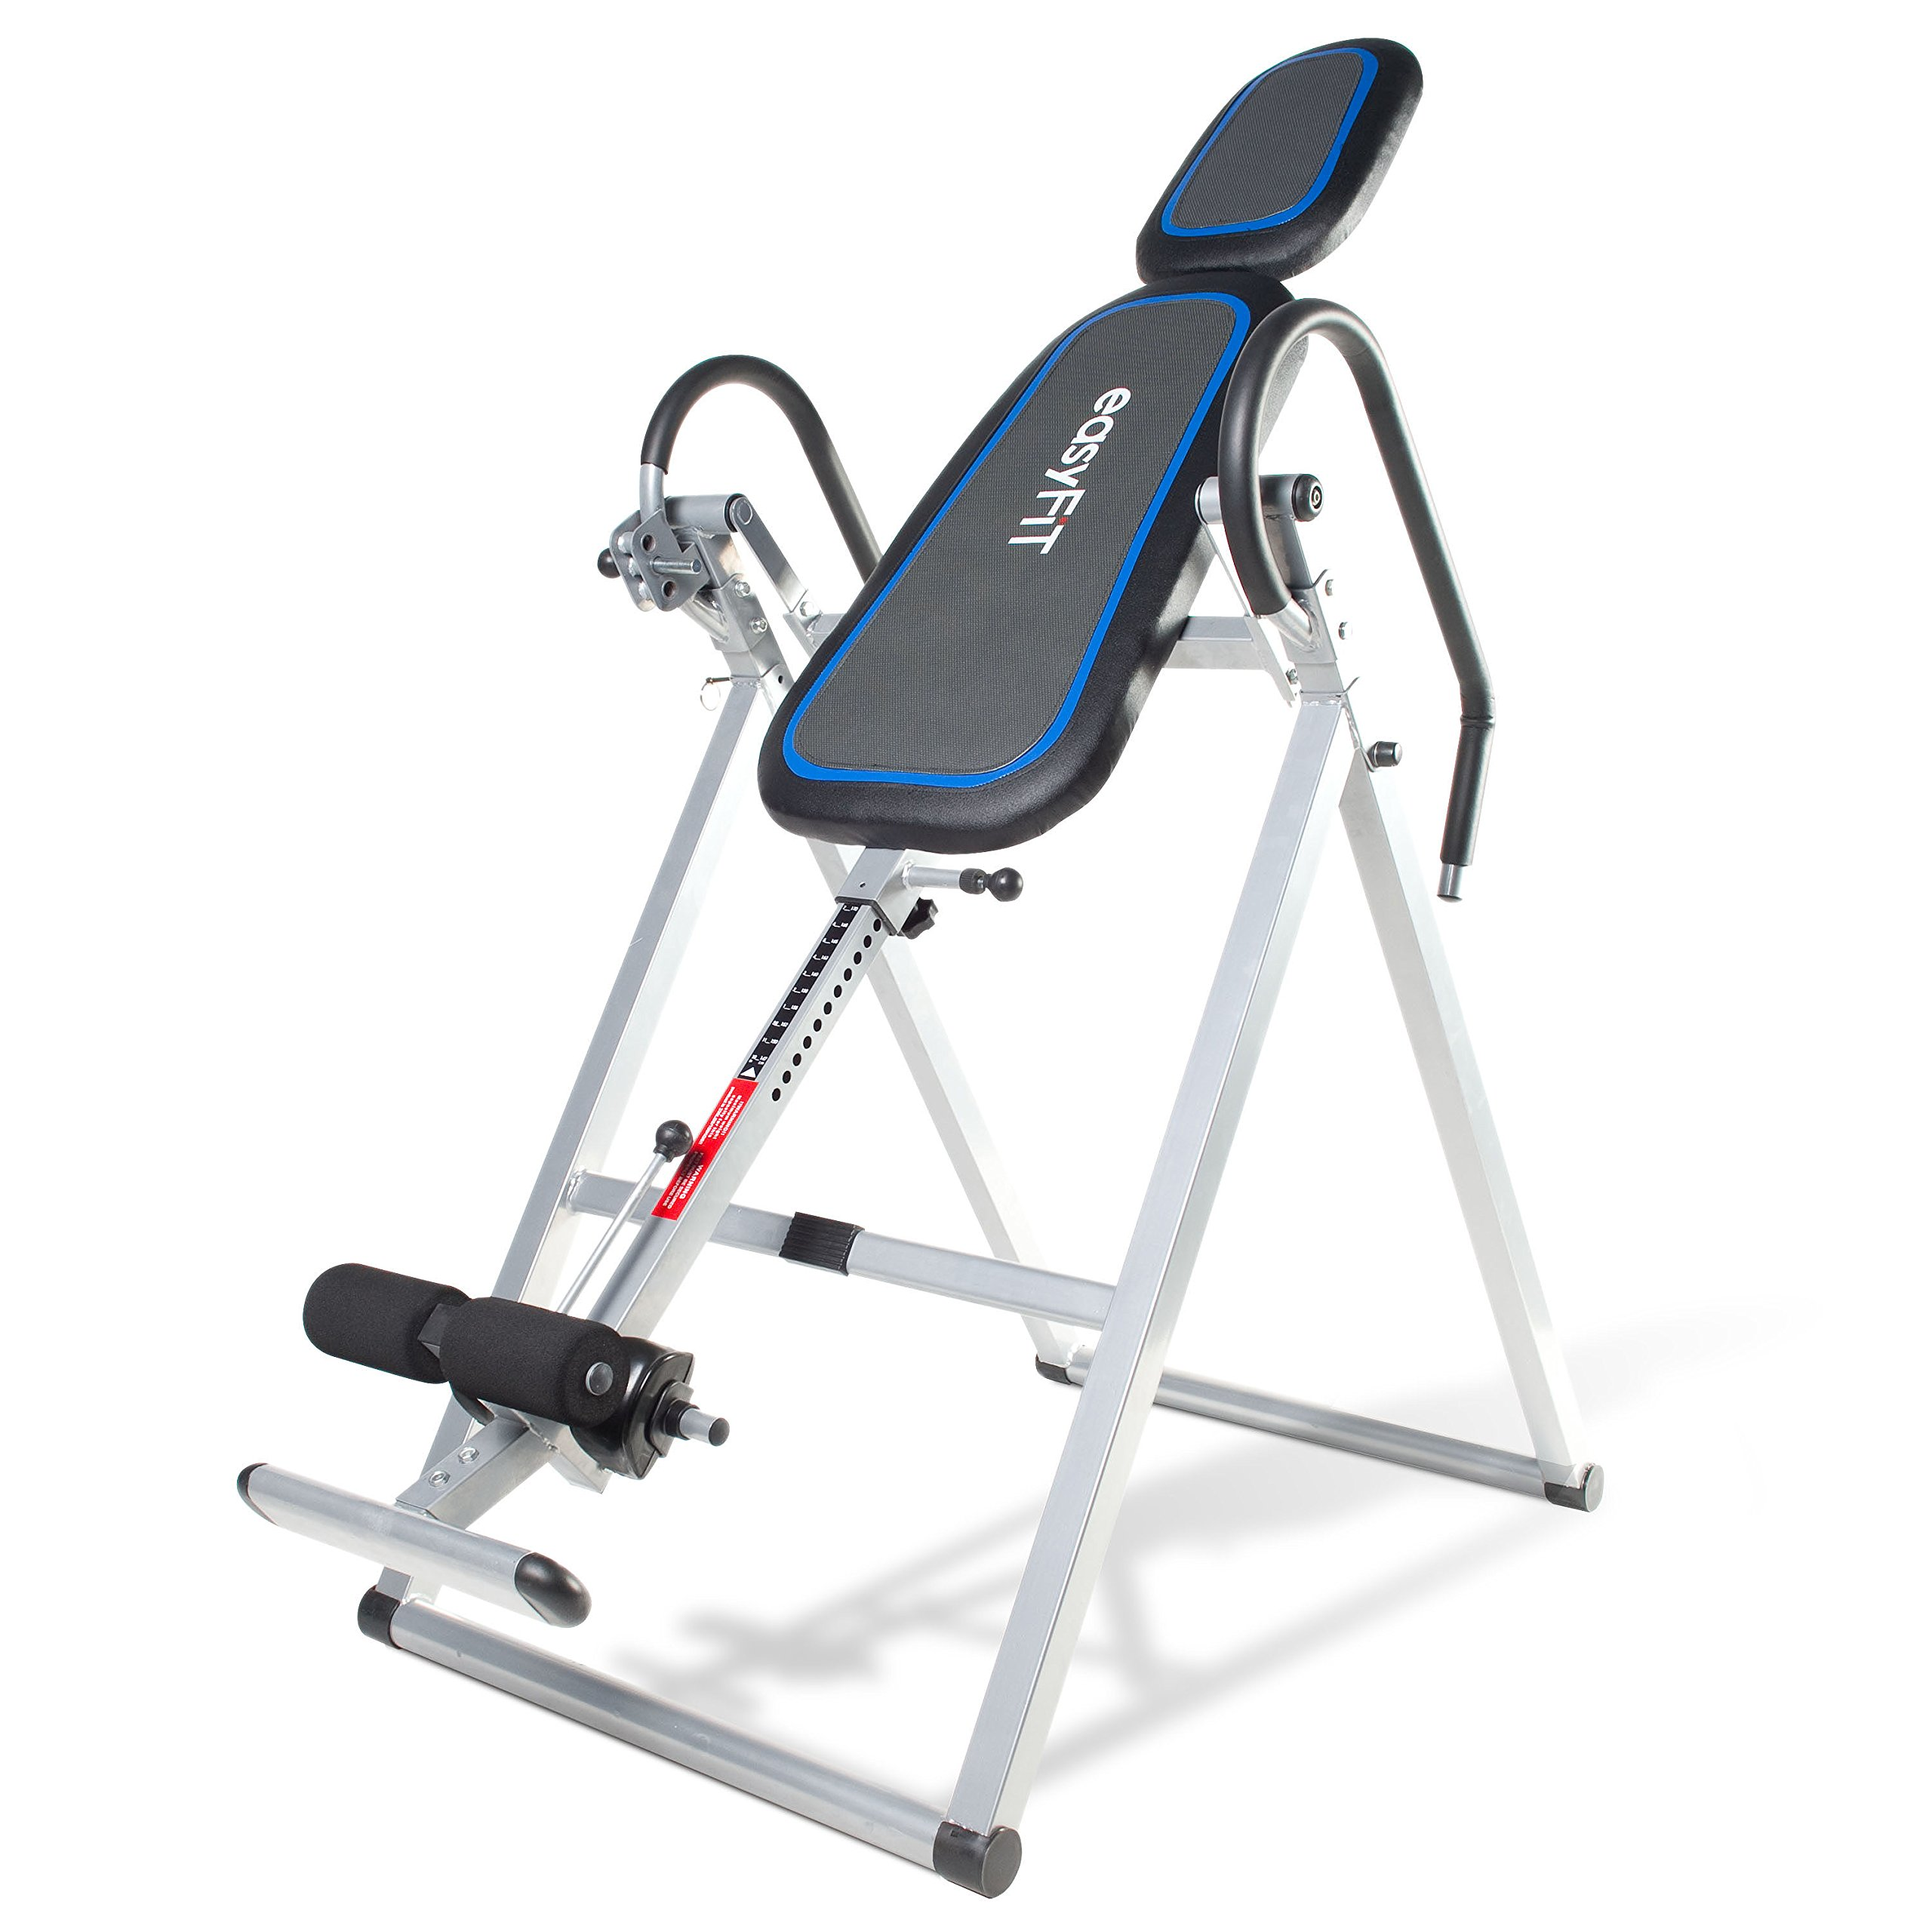 easyFiT Adjustable Inversion Therapy Table by Easy Fit